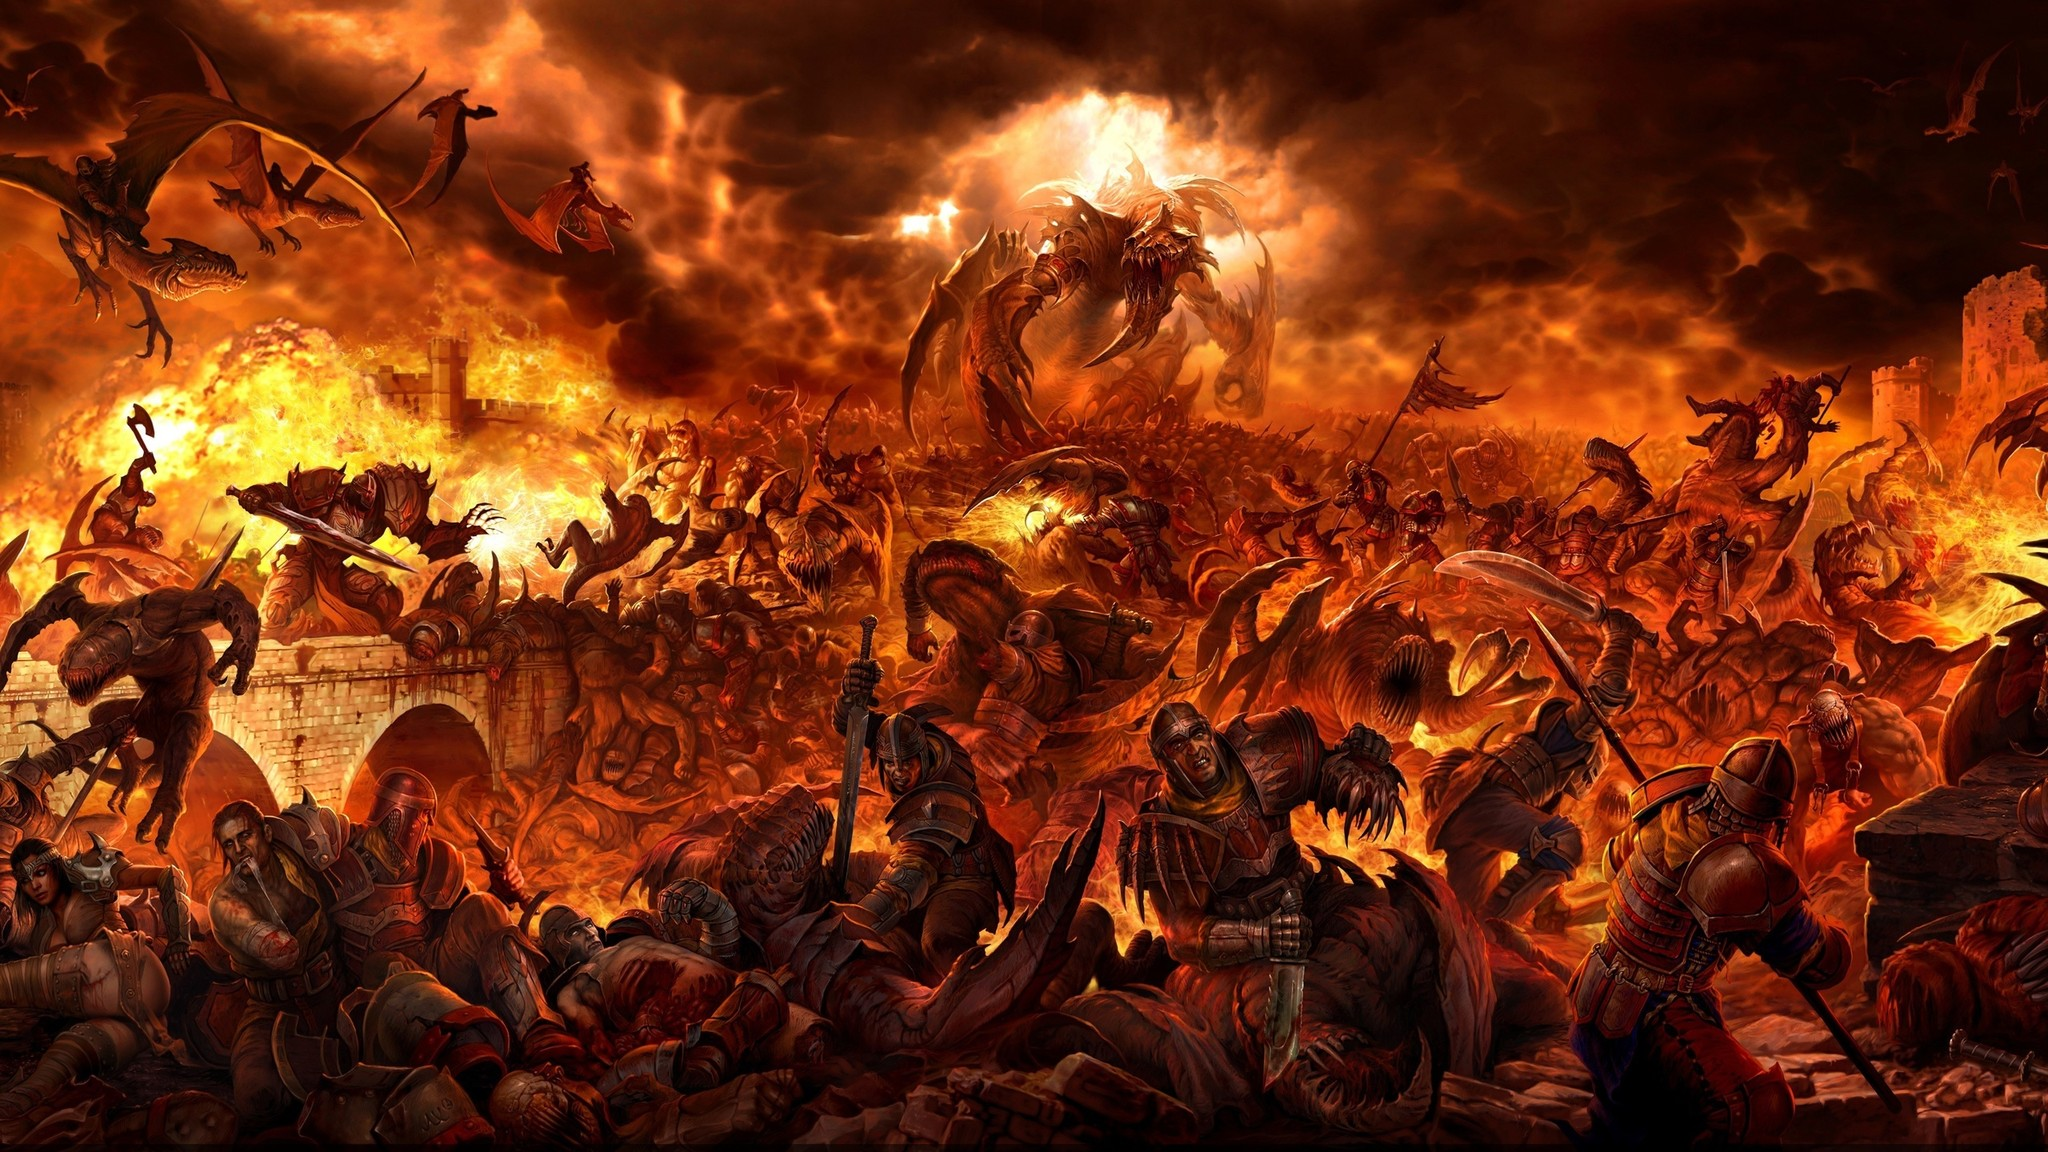 the decent of macbeth to the fiery pits of hell